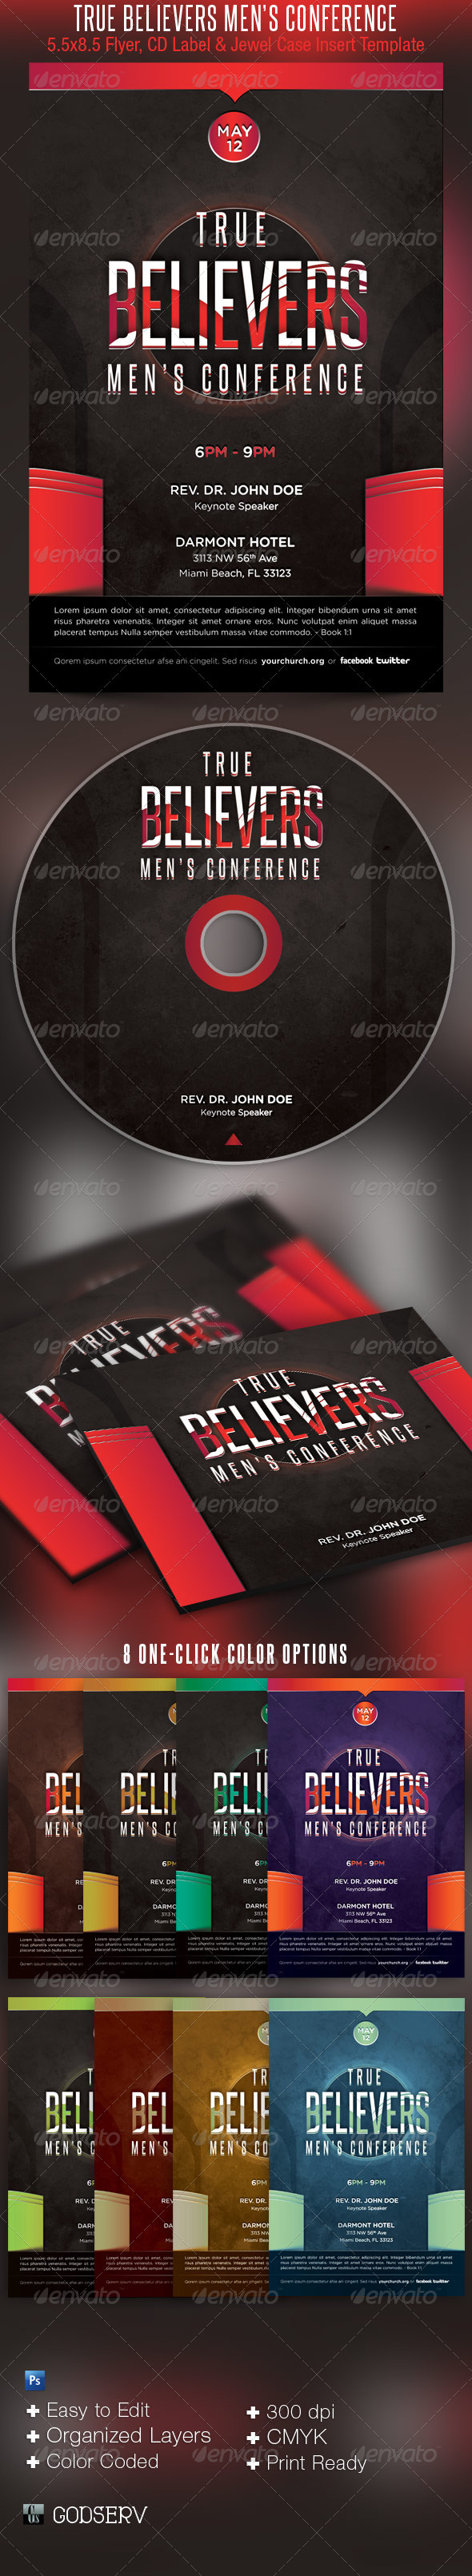 True Believers Mens Conference Church Flyer and CD - Church Flyers